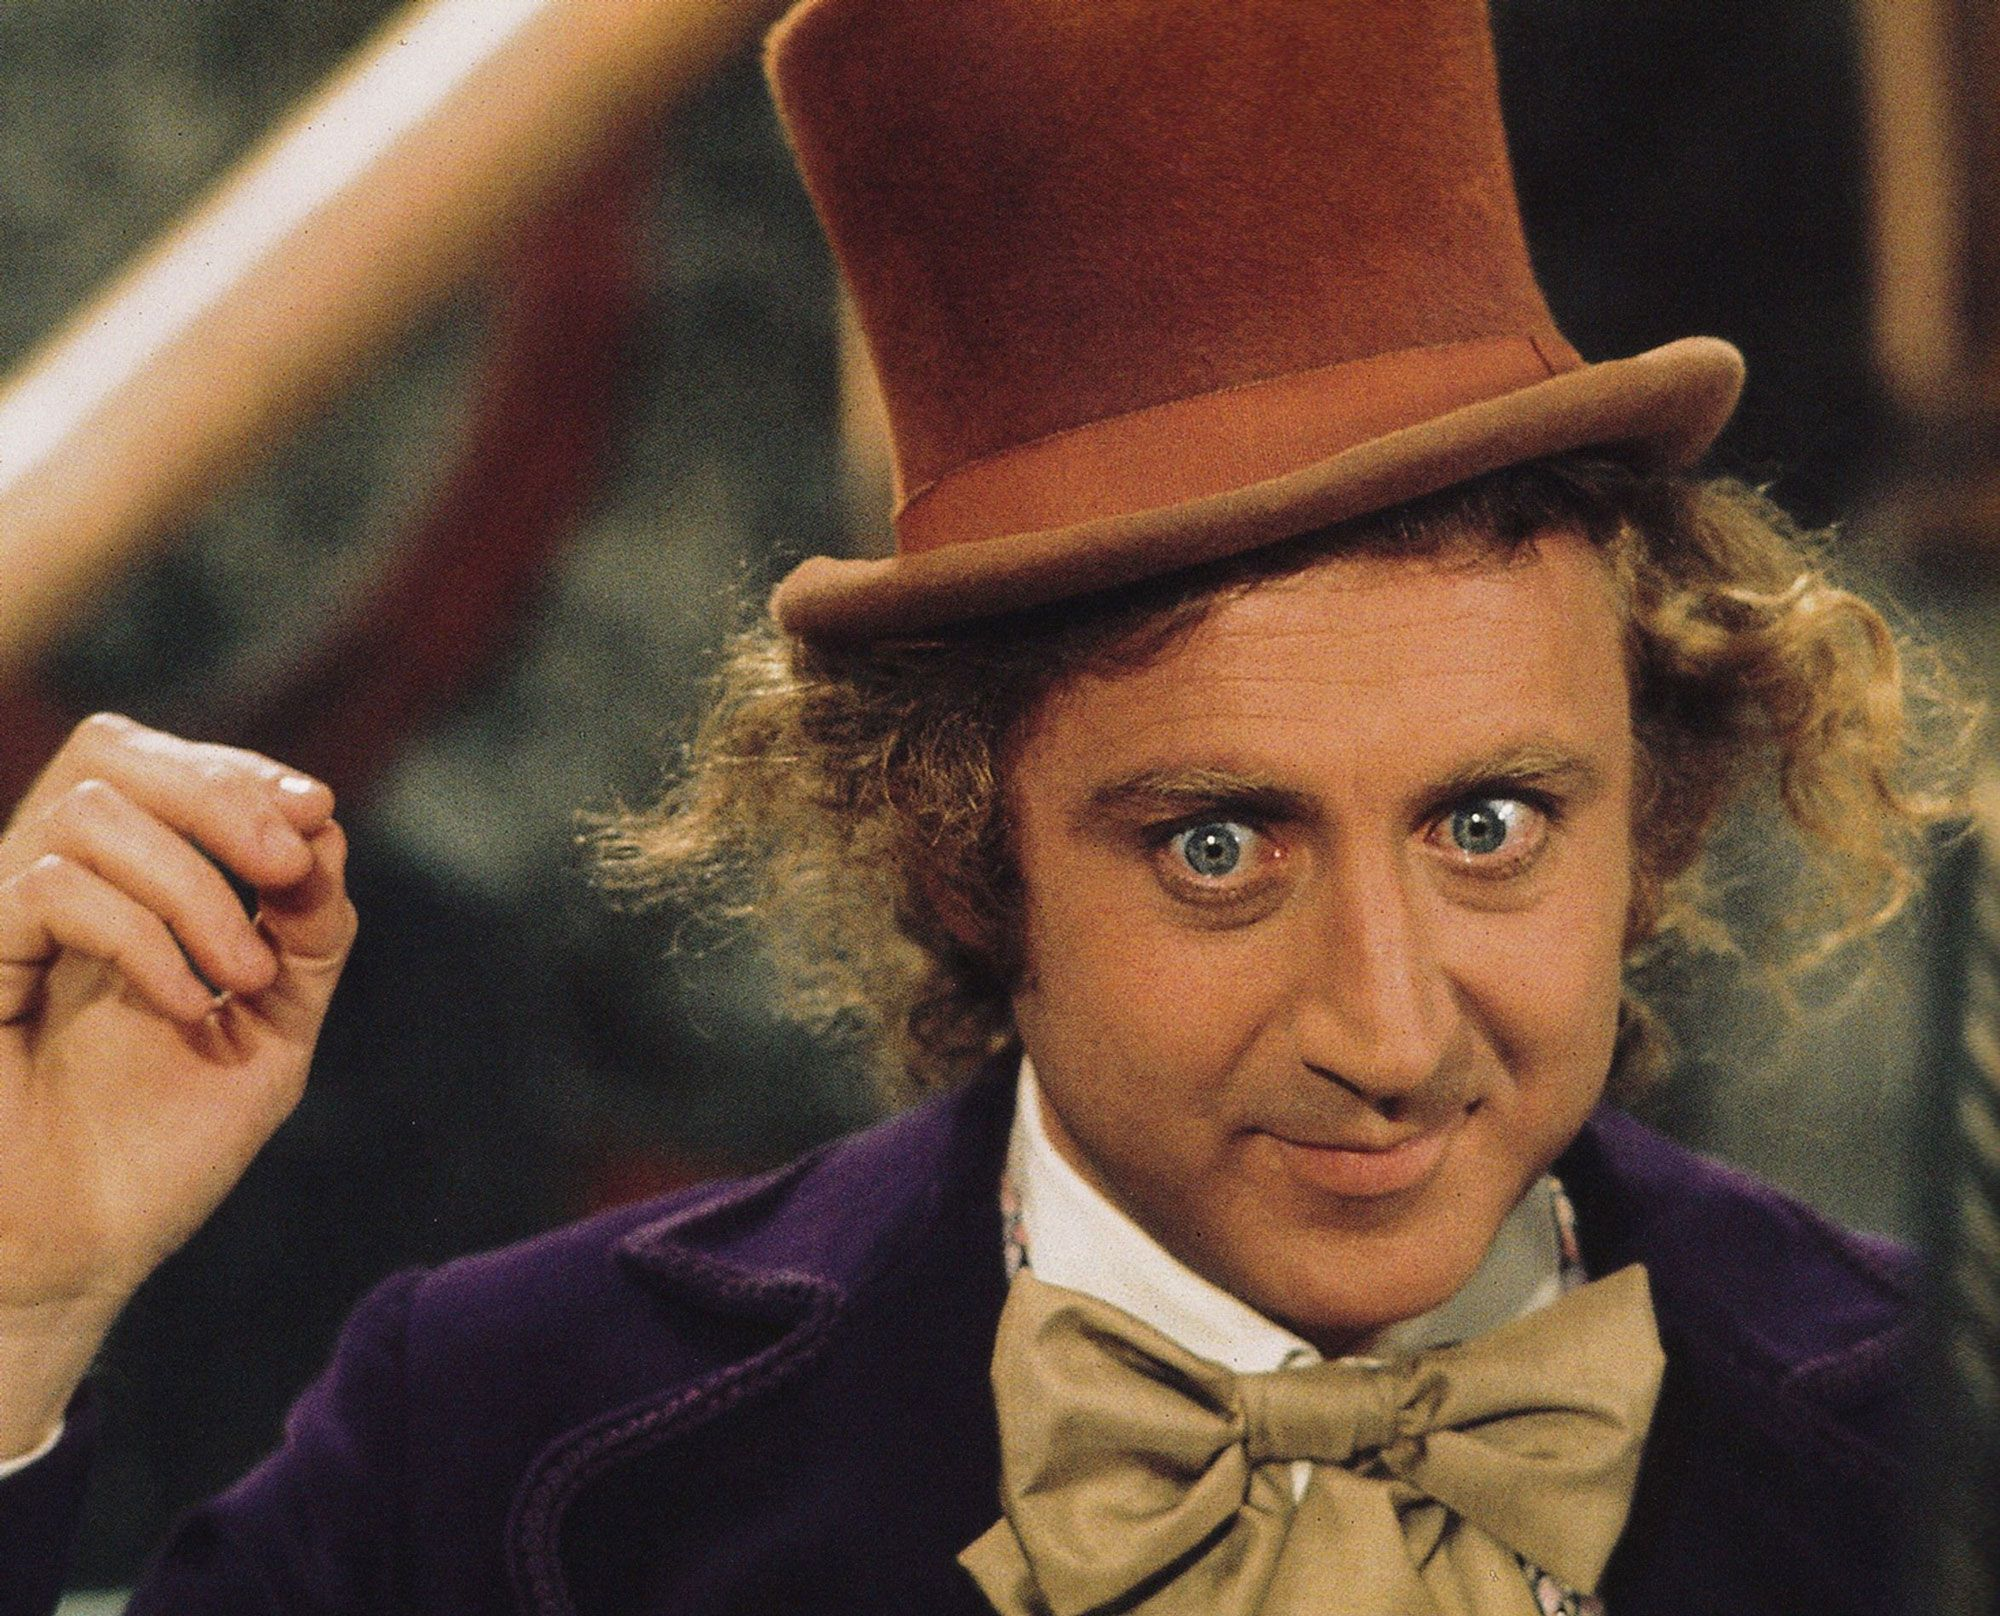 1495117772 gene wilder charlie and the chocolate factory 28 Things You Probably Never Knew About Willy Wonka And The Chocolate Factory